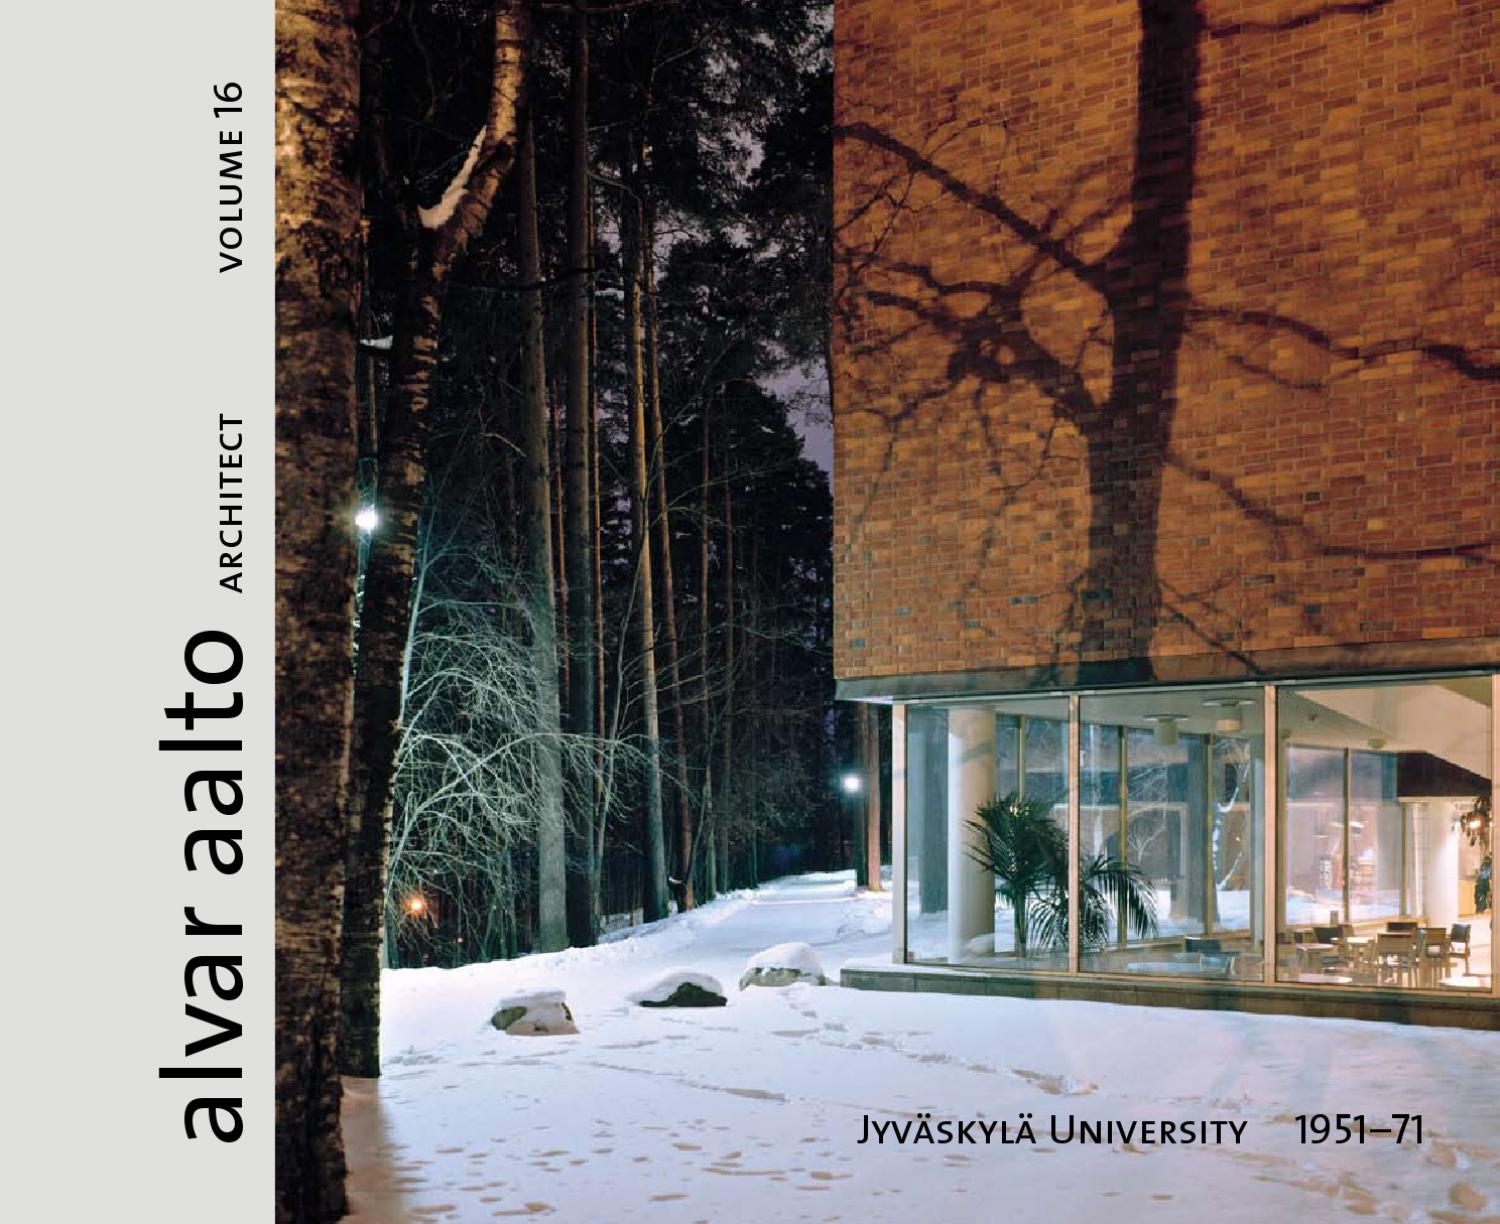 Alvar Aalto Architect volume 16 Jyväskylä University 1951-57 by Alvar Aalto Foundation - Issuu